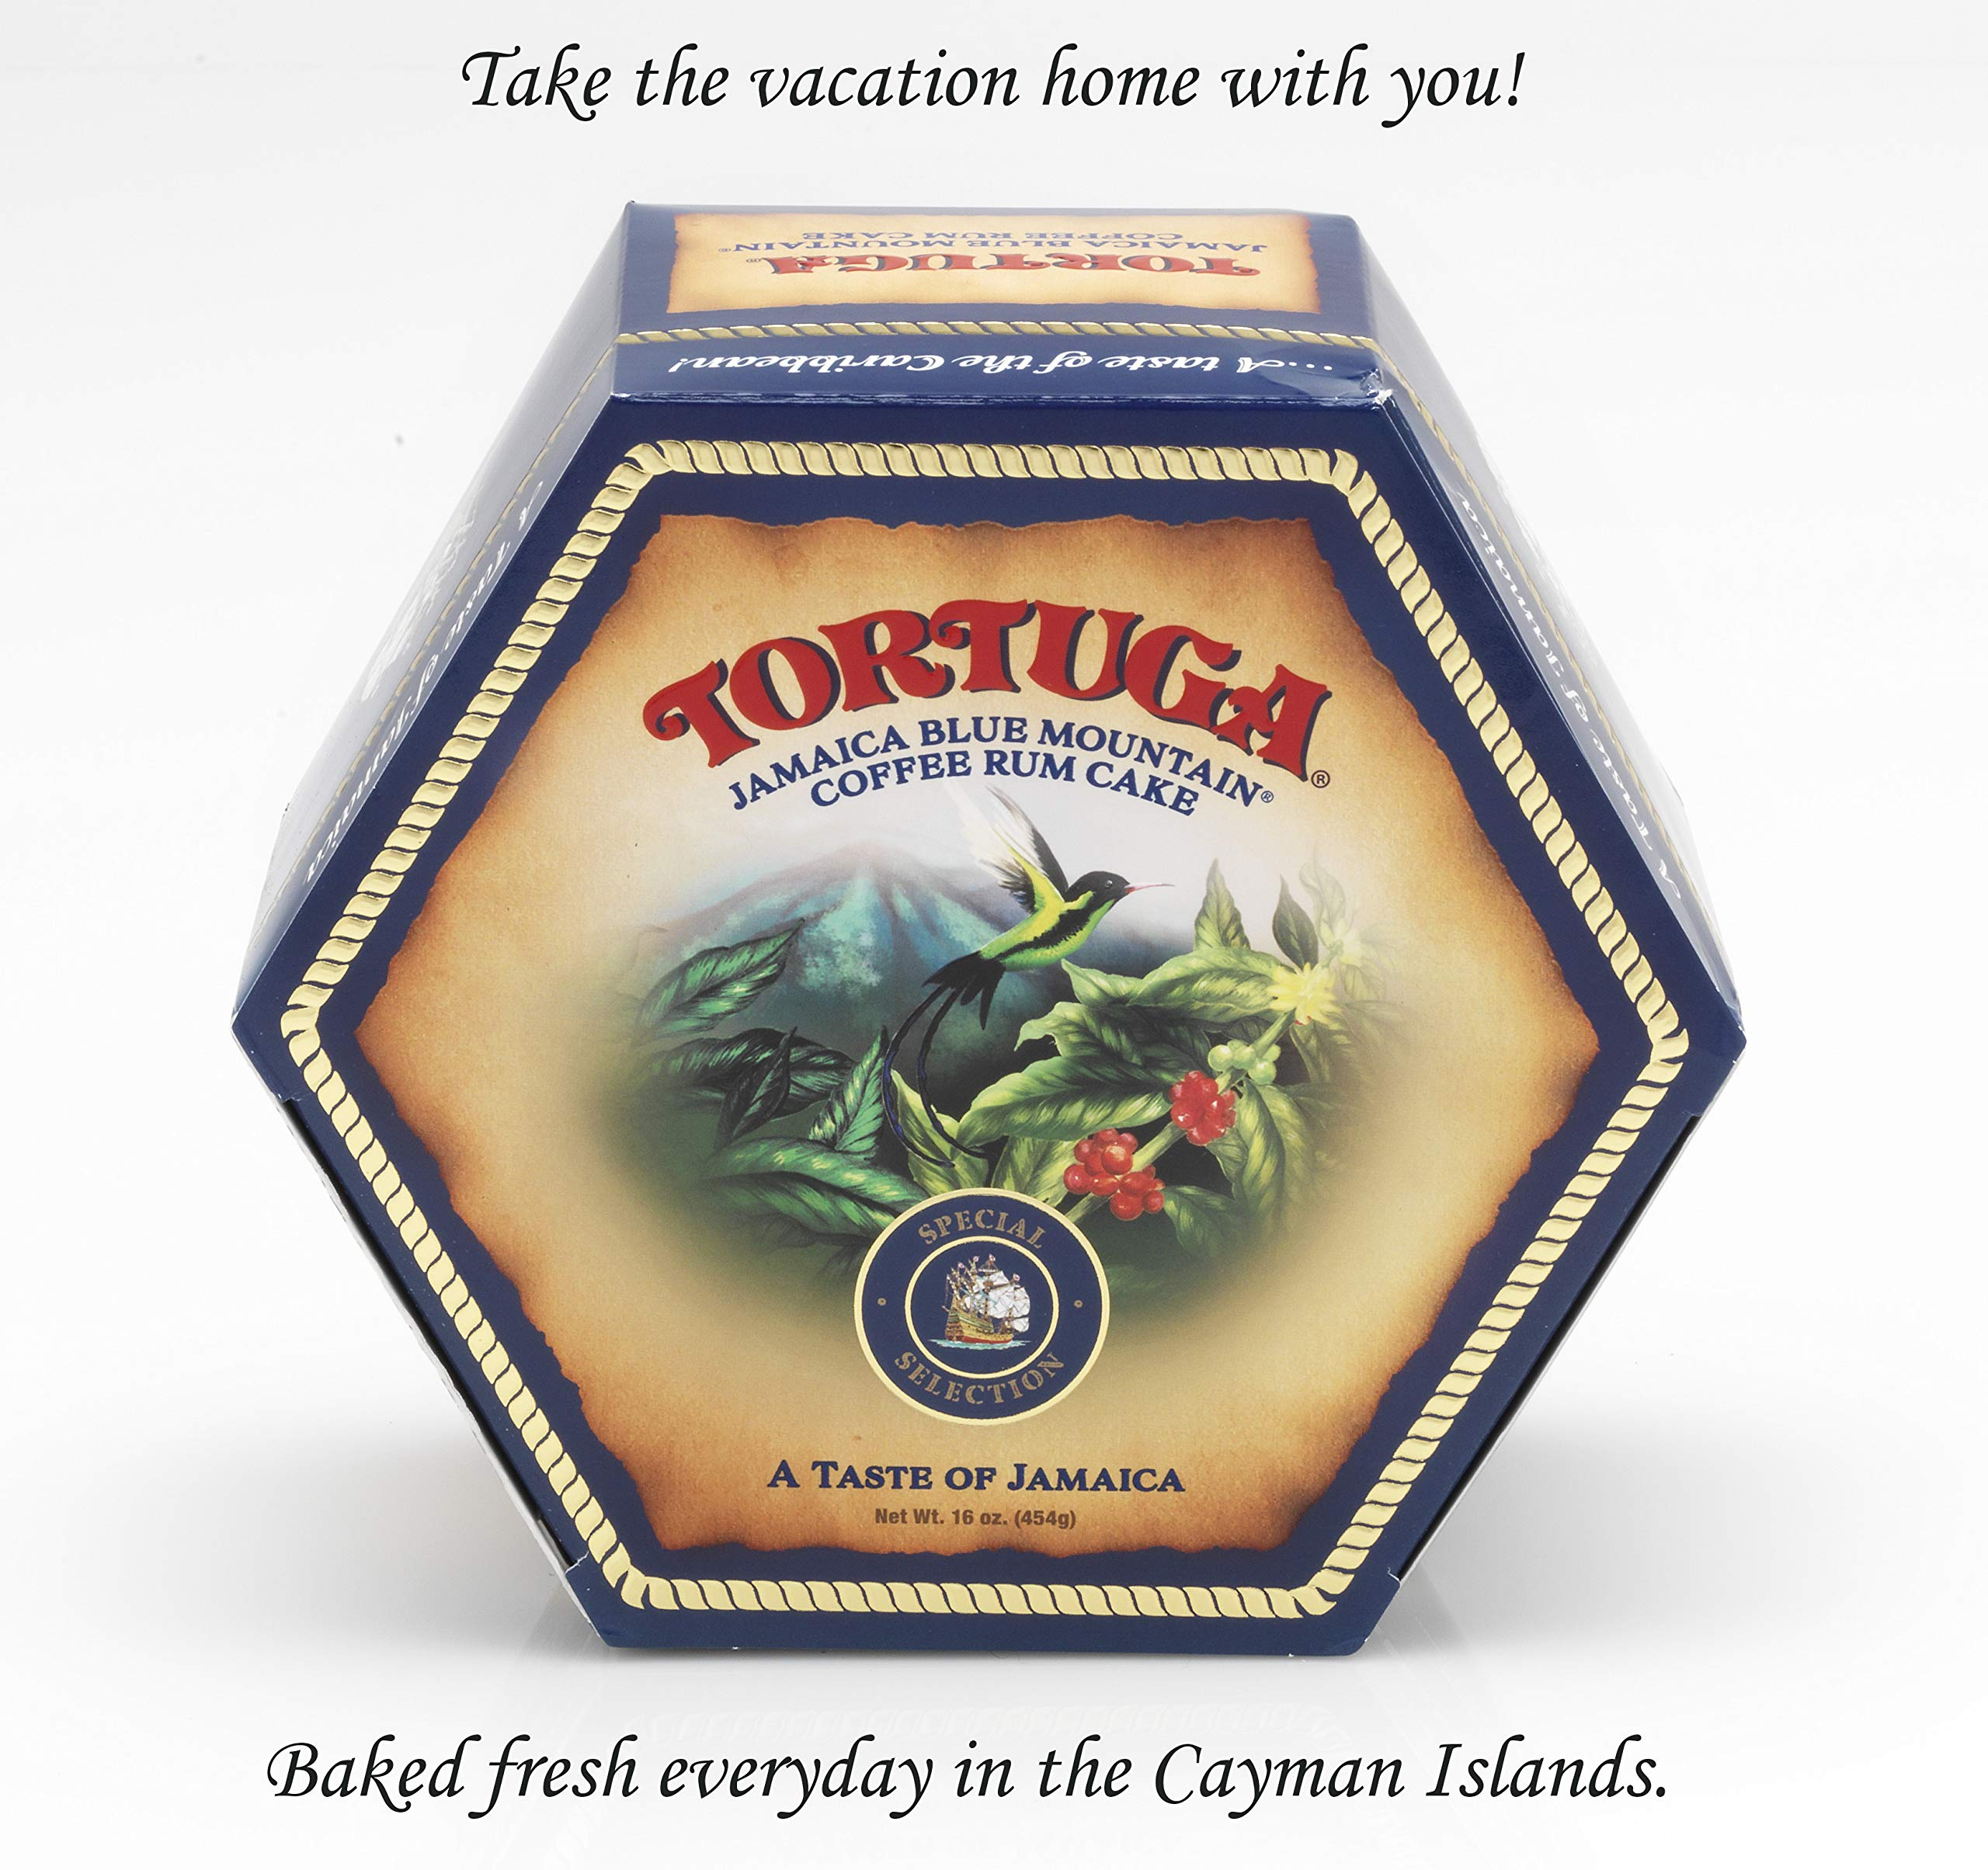 TORTUGA Caribbean Blue Mountain Coffee Rum Cake - 4 oz. - The Perfect Premium Gourmet Gift by TORTUGA (Image #2)